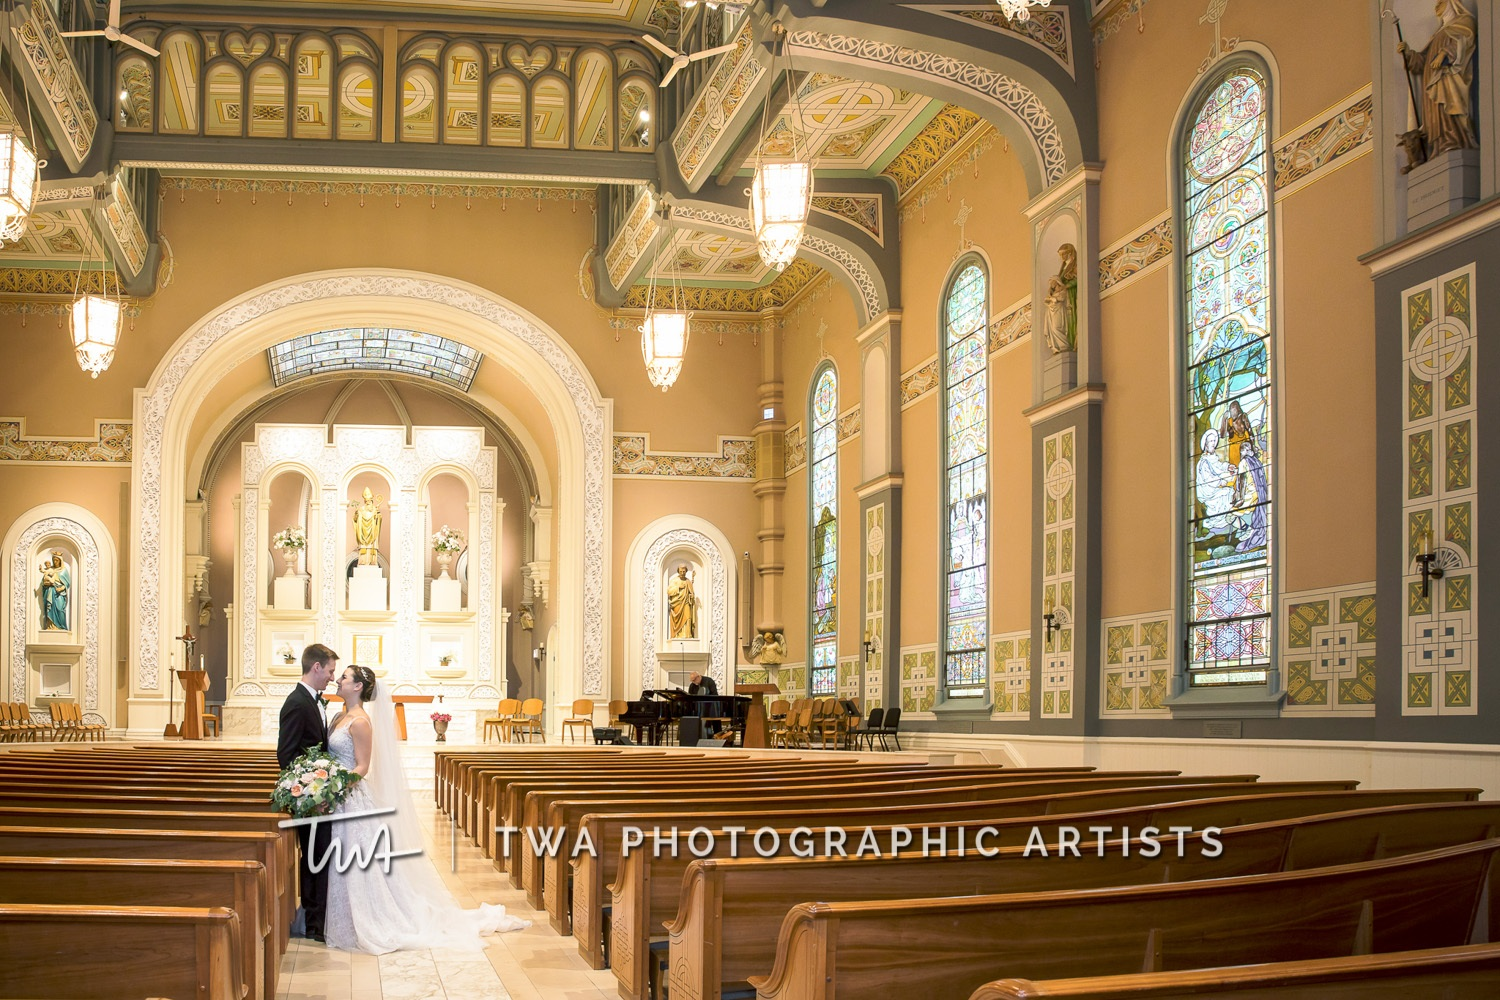 Chicago-Wedding-Photographer-TWA-Photographic-Artists-Galleria-Marchetti_Bessonny_Green_JA_ME-0618